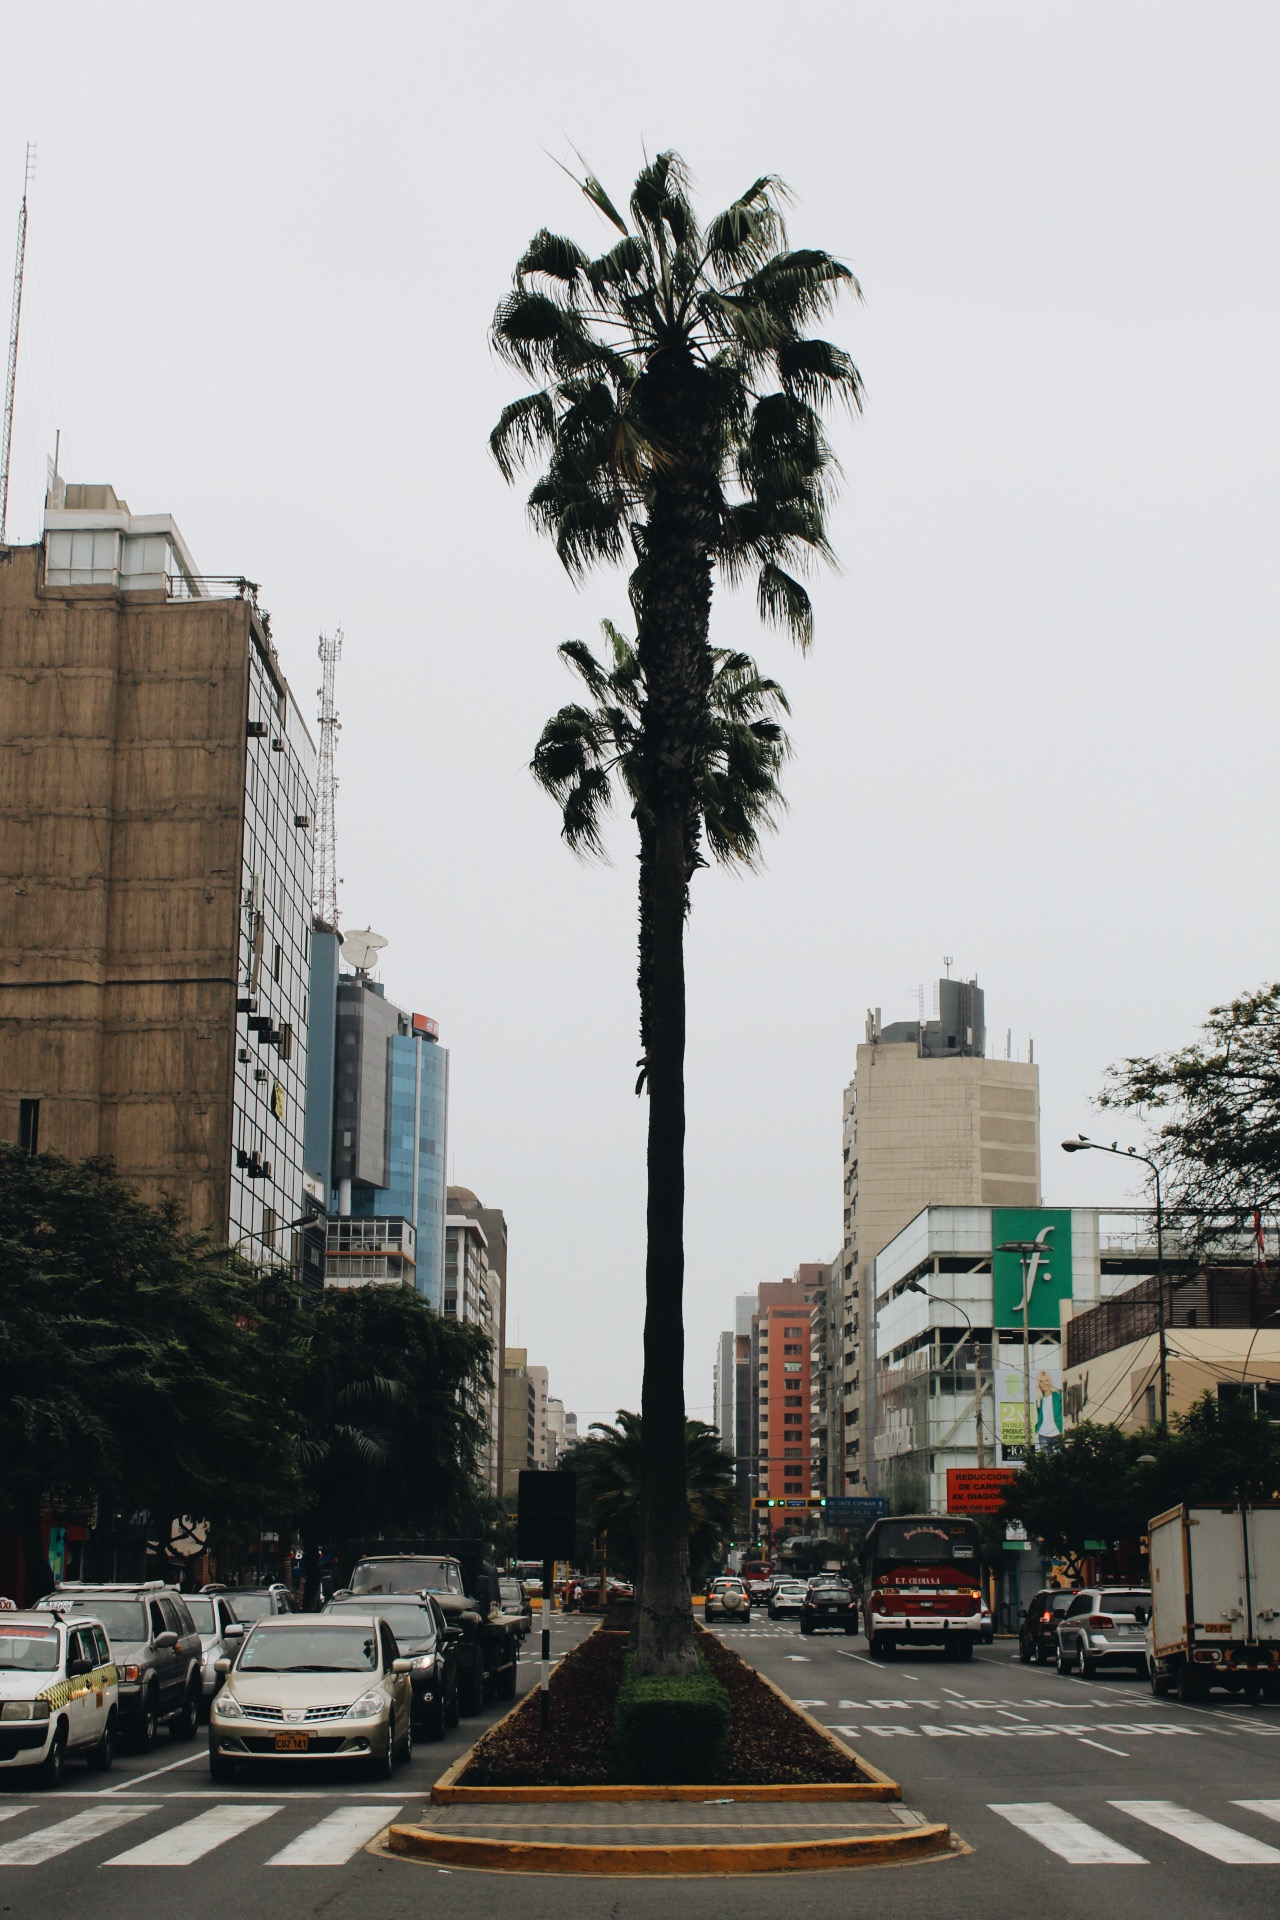 {the coastal city of Lima is actually a desert that has to import all their water for plants}